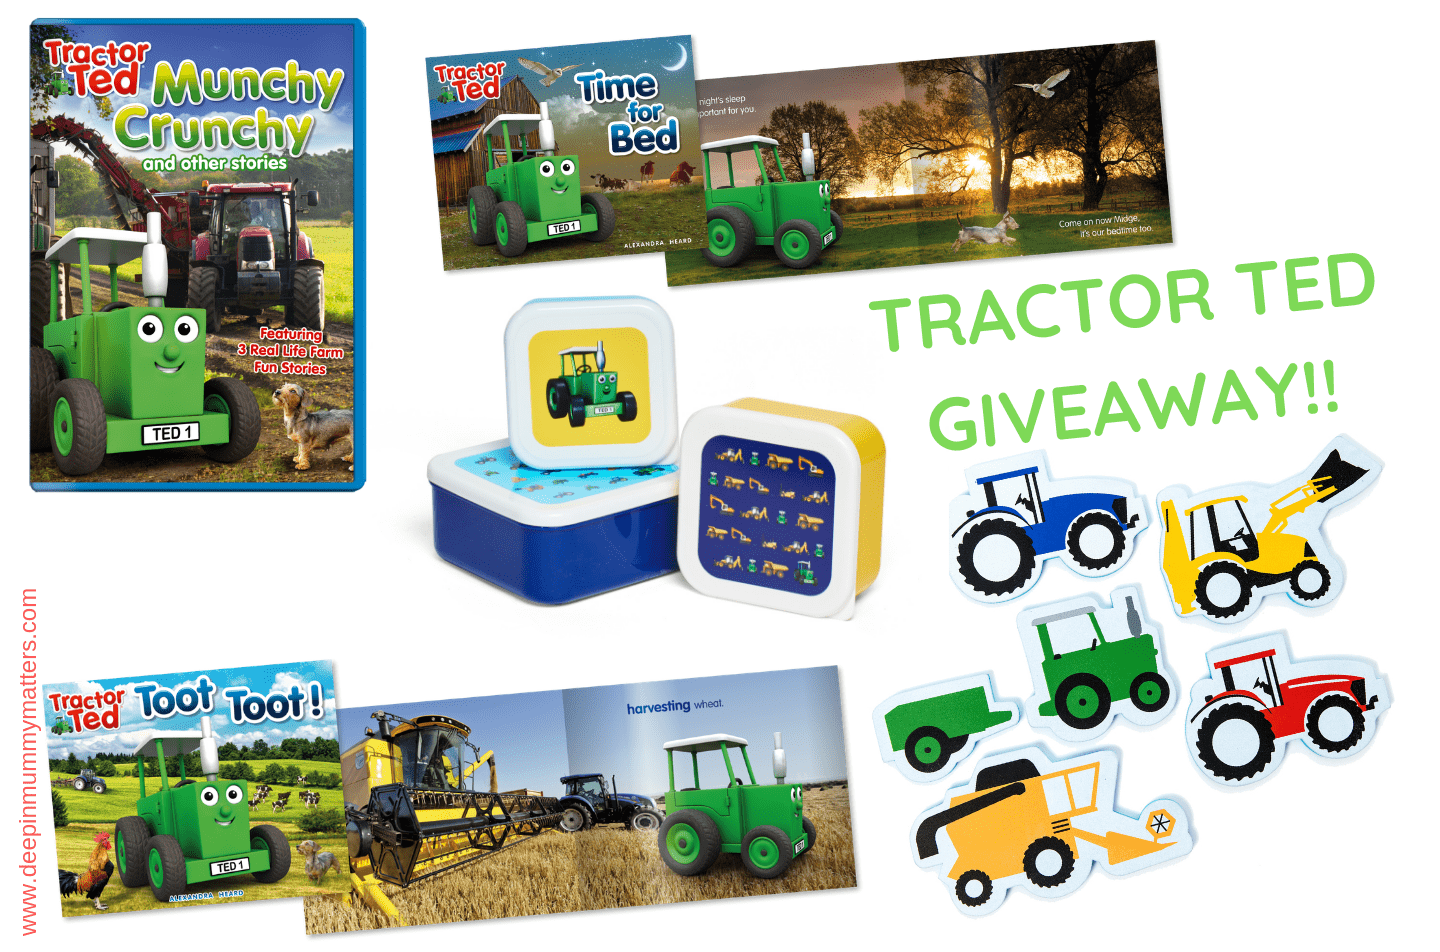 Tractor Ted giveaway